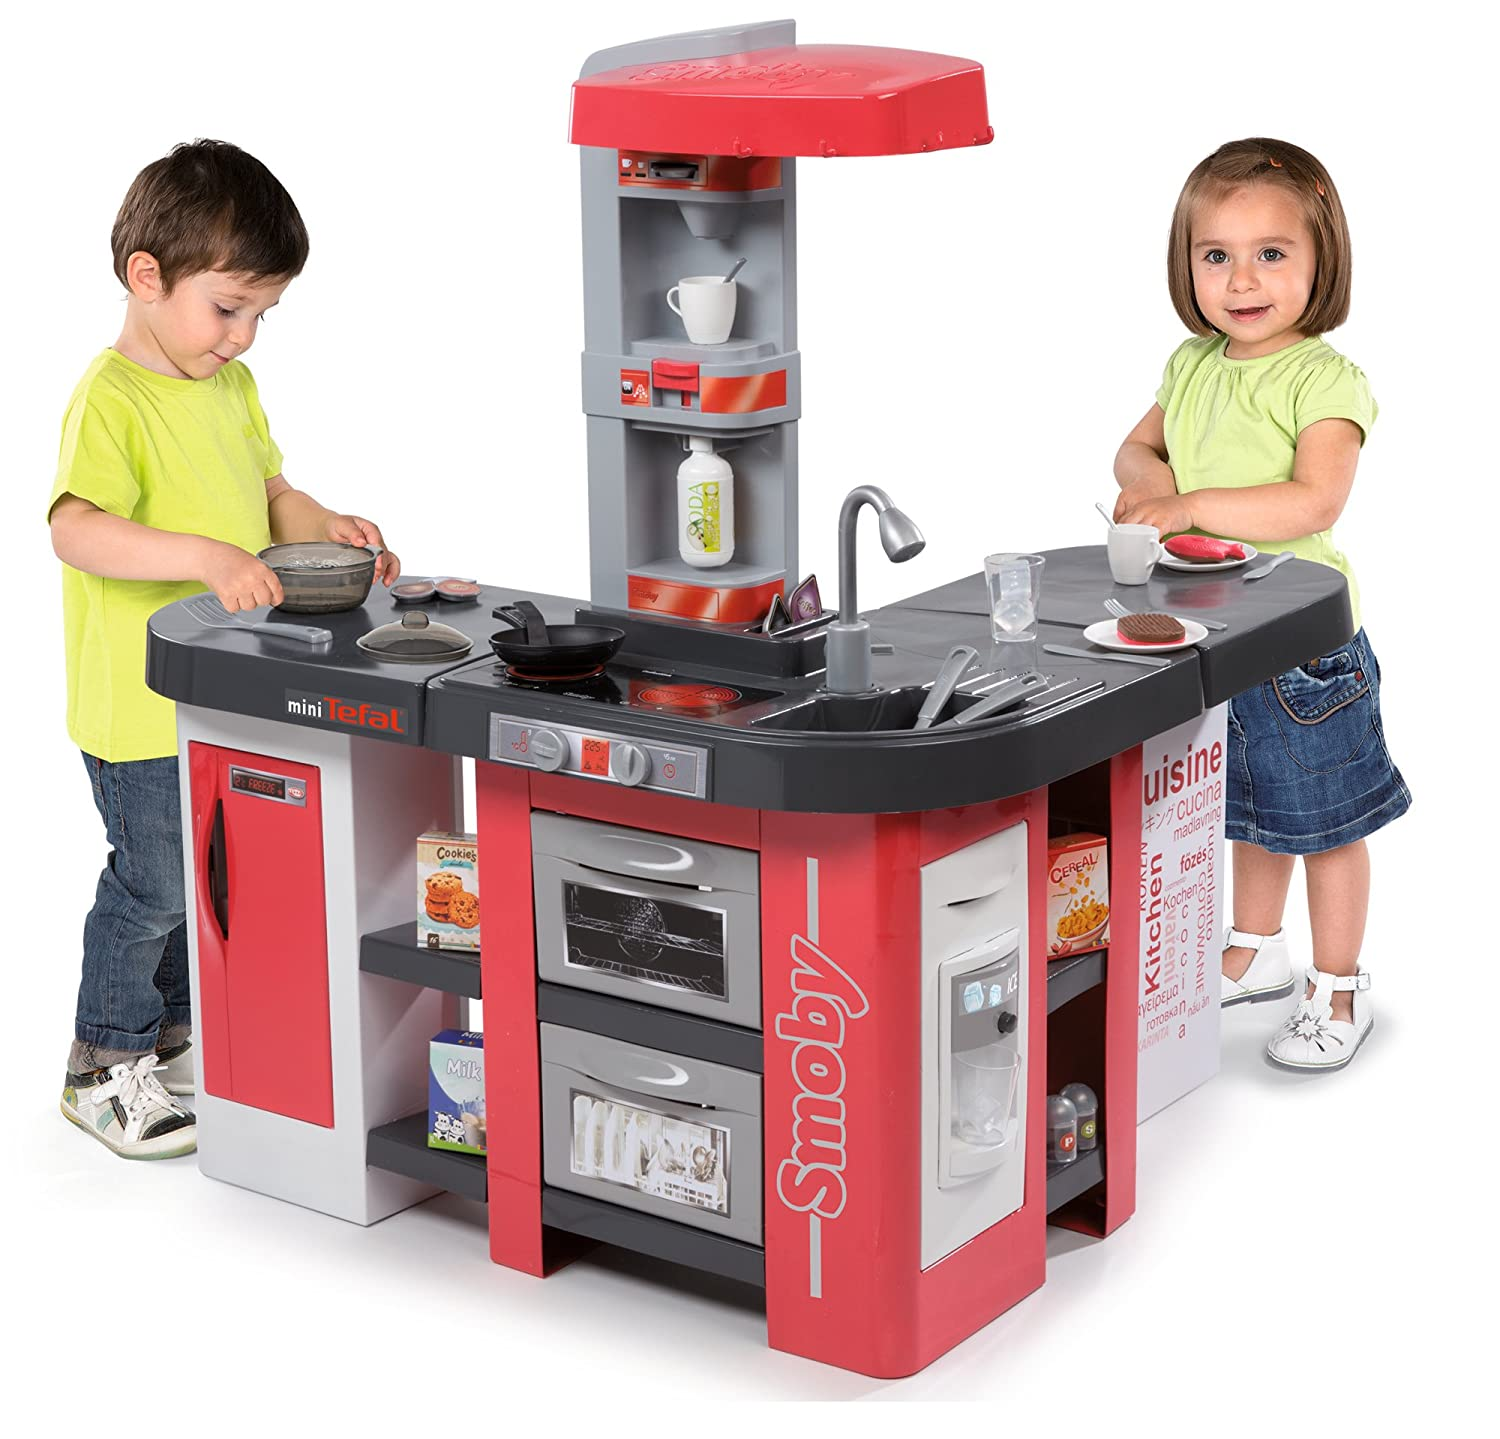 Theo Klein Küche | Smoby 7600311014 Tefal Studio Bubble Play Kitchen 2x Large